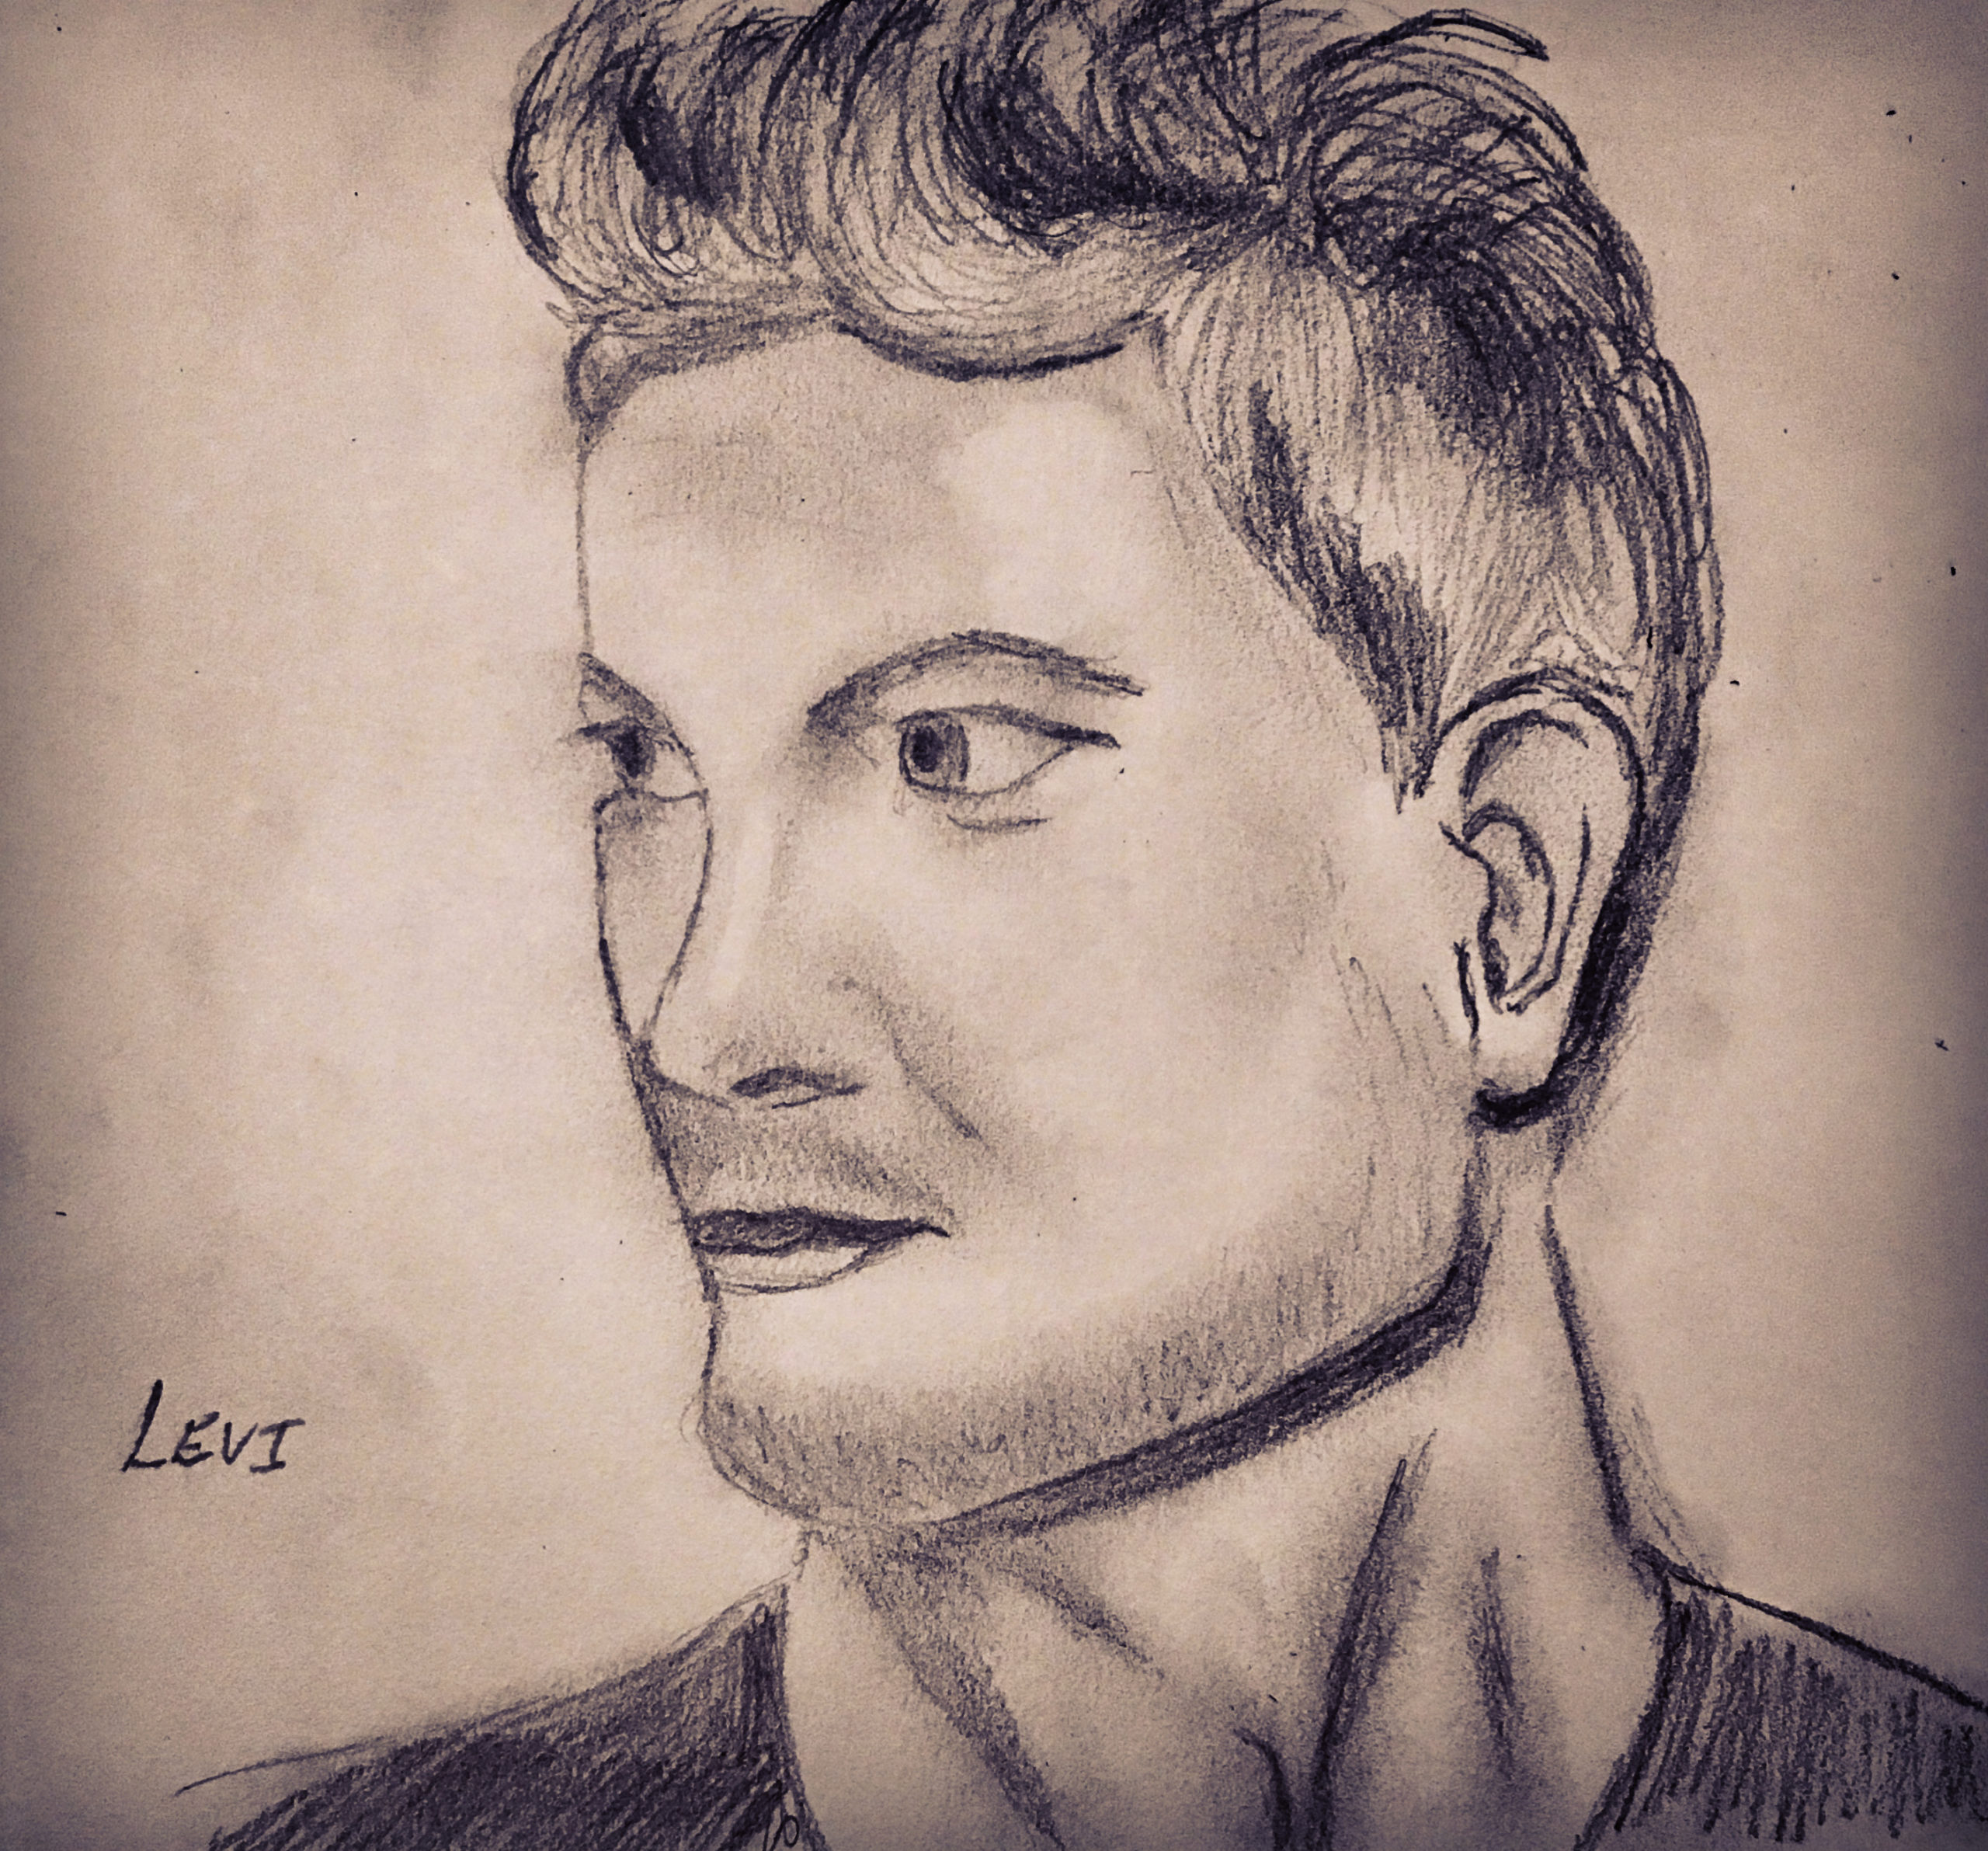 A creative endeavor: Sketch of Levi, a character in our When the Rain Falls Series